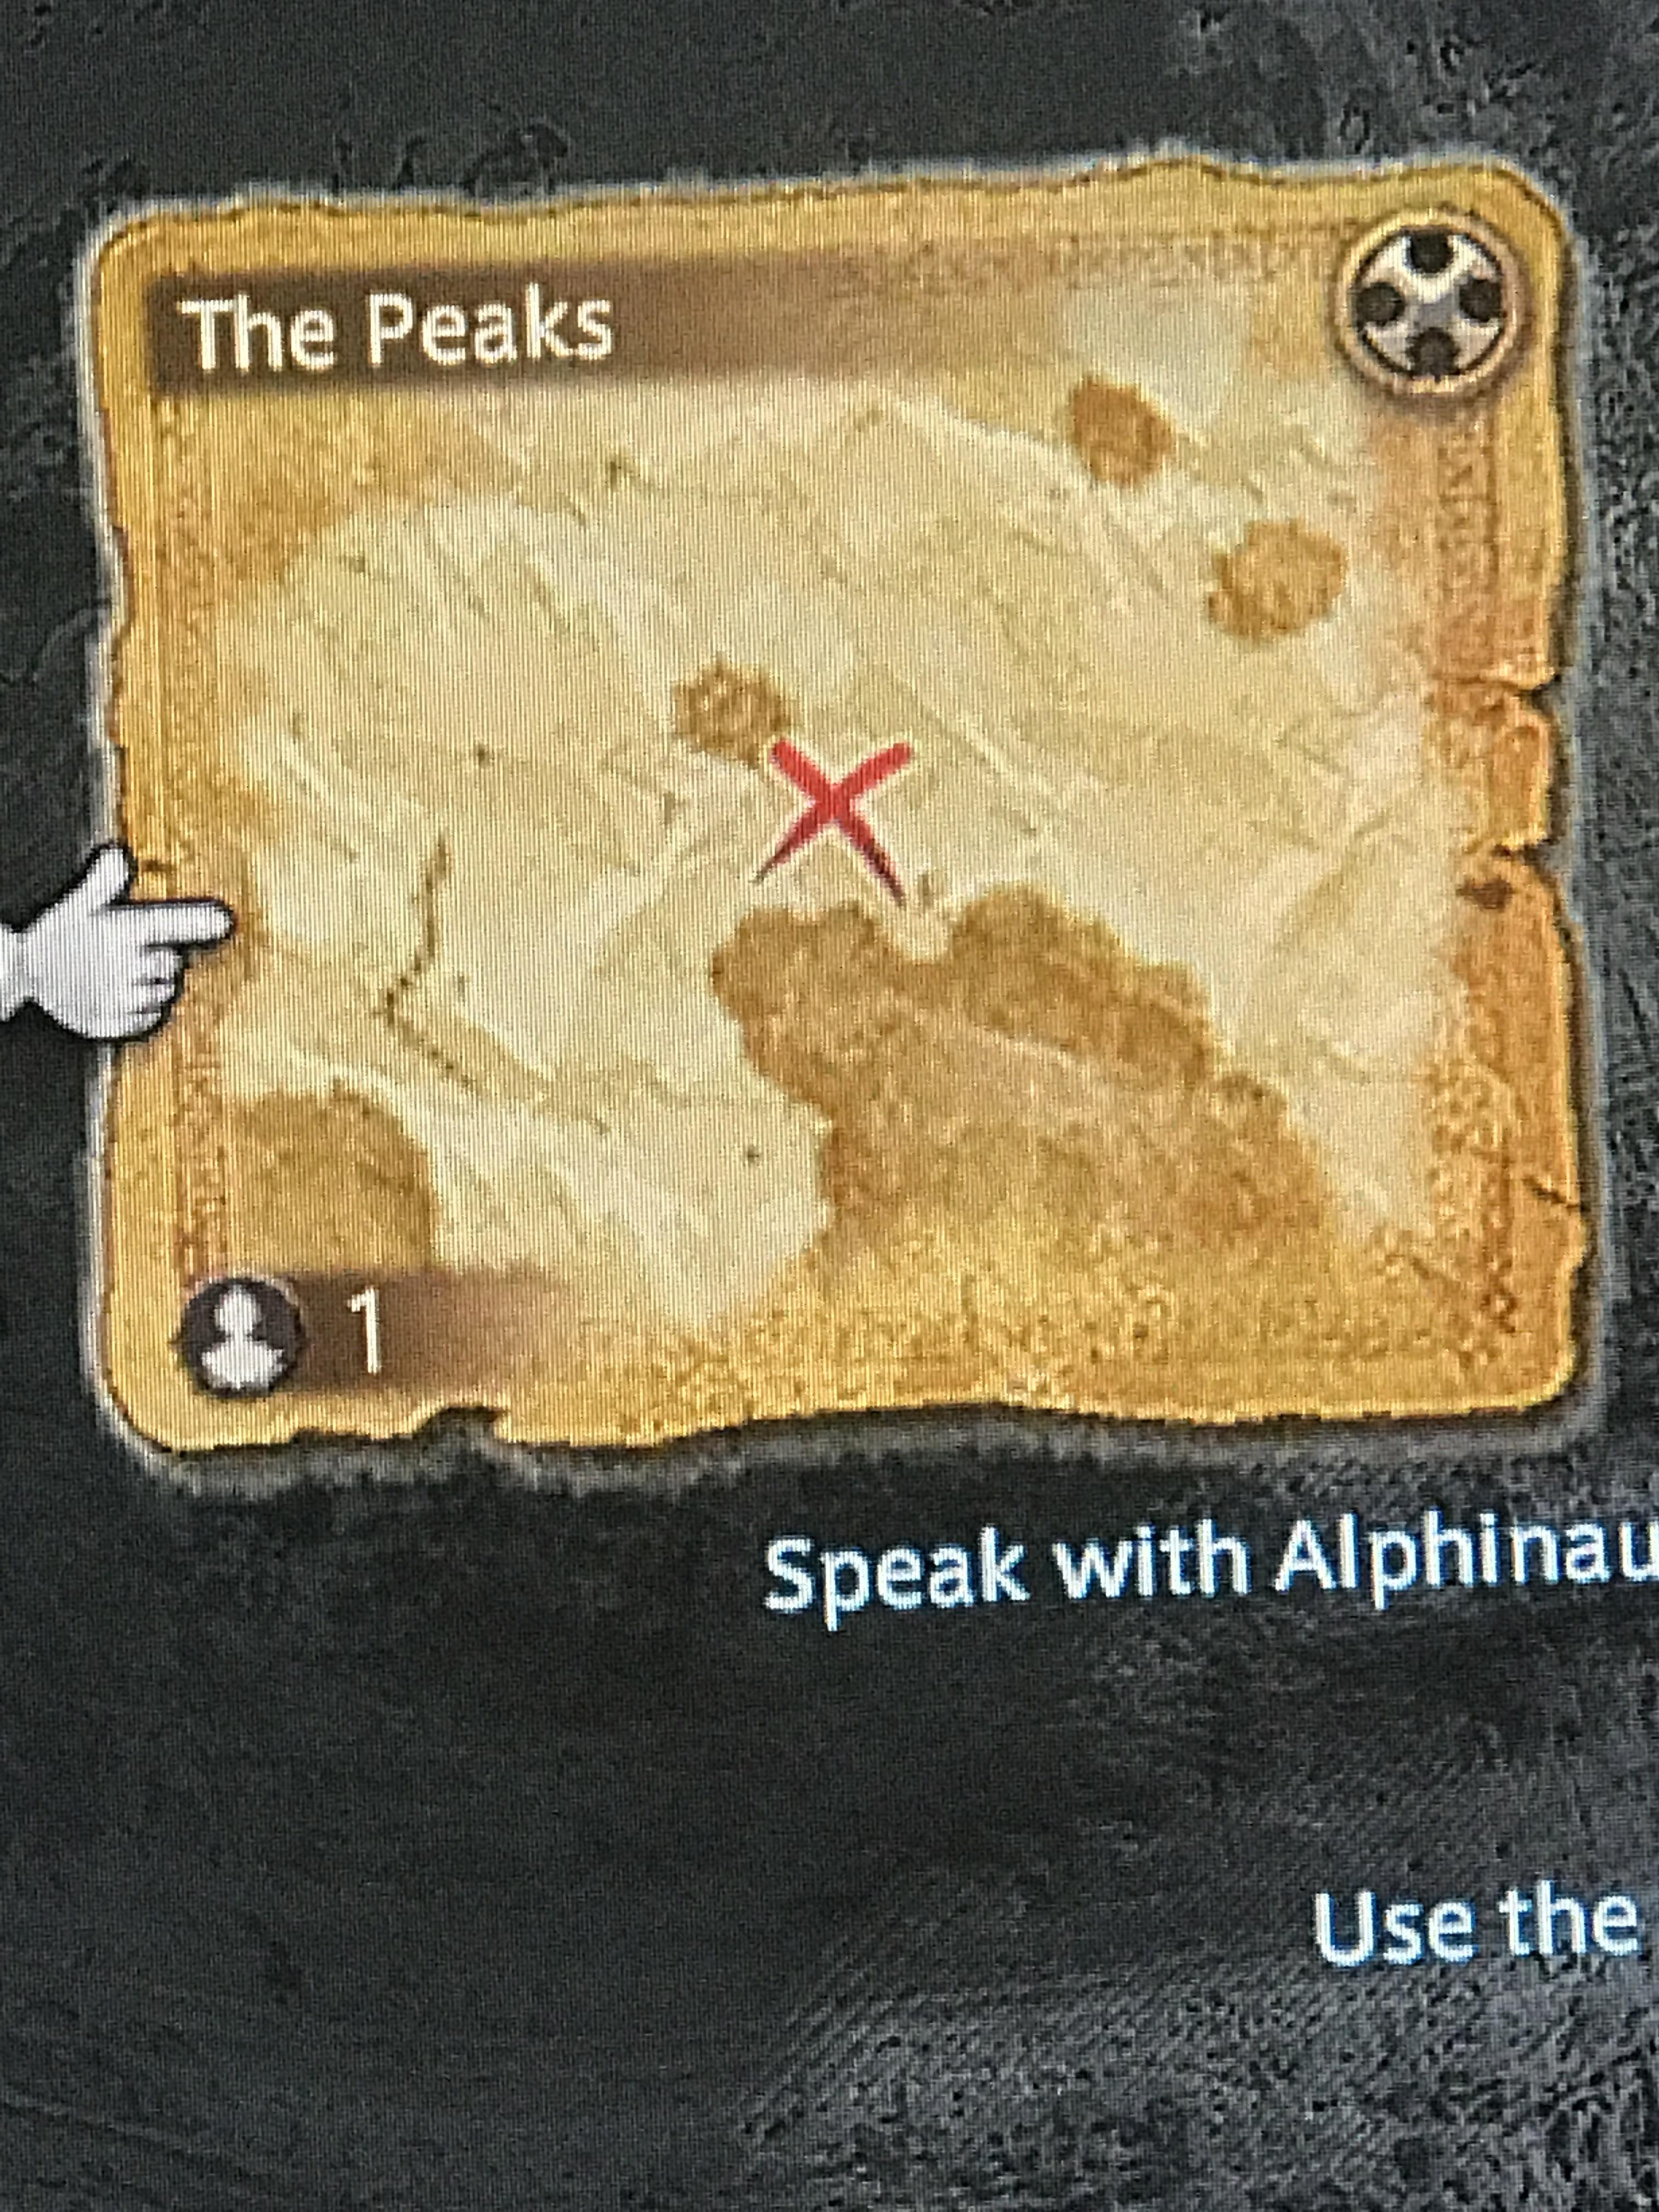 Ffxiv Treasure Maps : ffxiv, treasure, Treasure, Anyone, Where, Peaks,, Because, Spent, Nearly, Looking, Stumped, Ffxiv